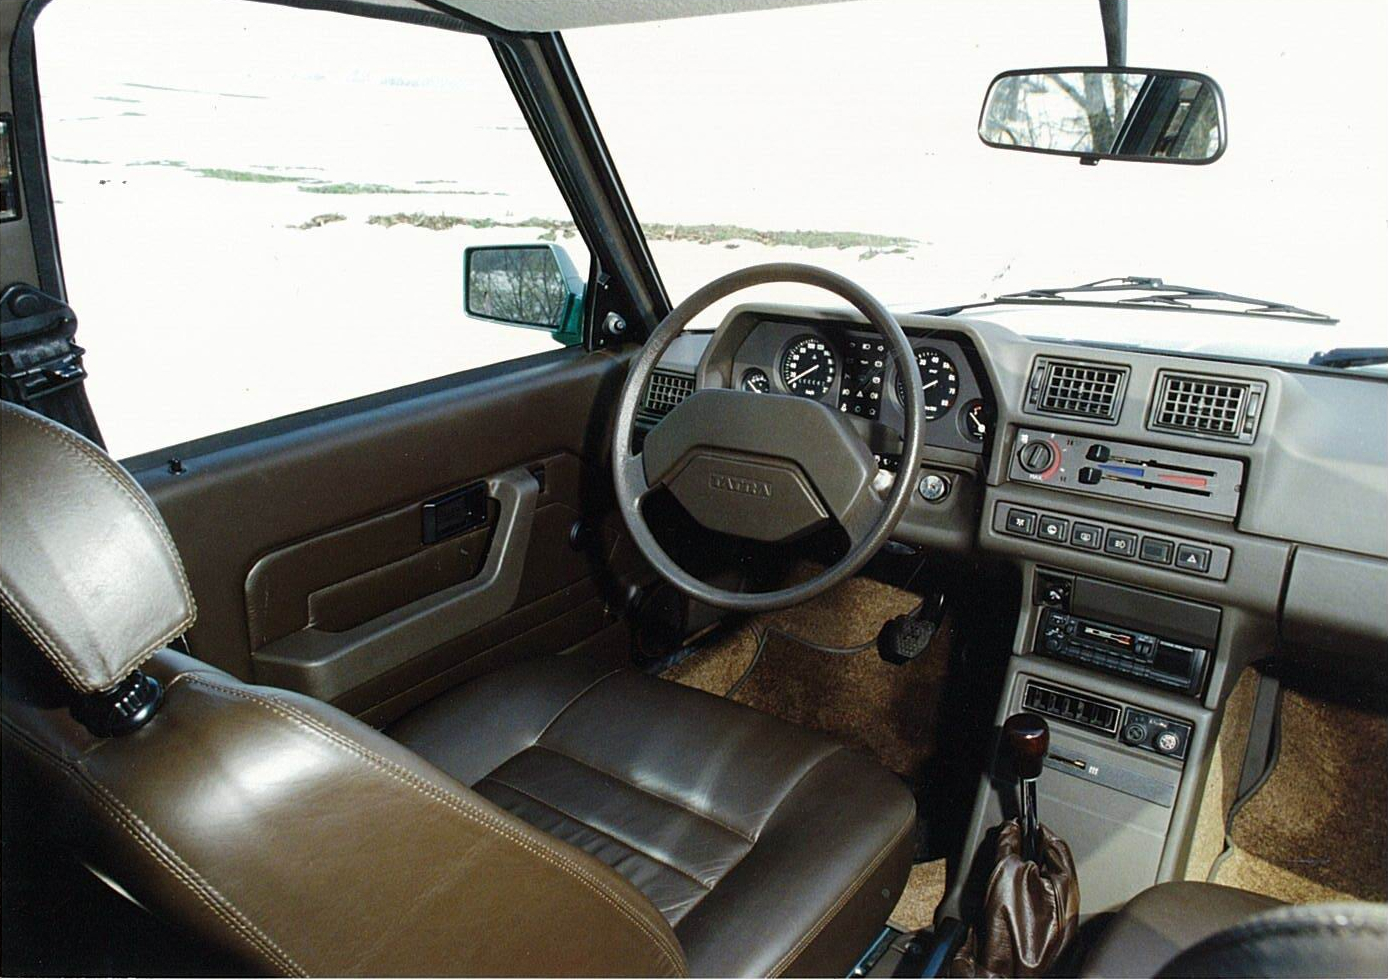 The cockpit of the Tatra 613 is sensible, uncluttered and unpretentious. It has a Soviet era utilitarian feel about it that has been given a hint of Italian style by Vignale. Strangely its a combination that works. (Picture courtesy kazni.blog.hu)